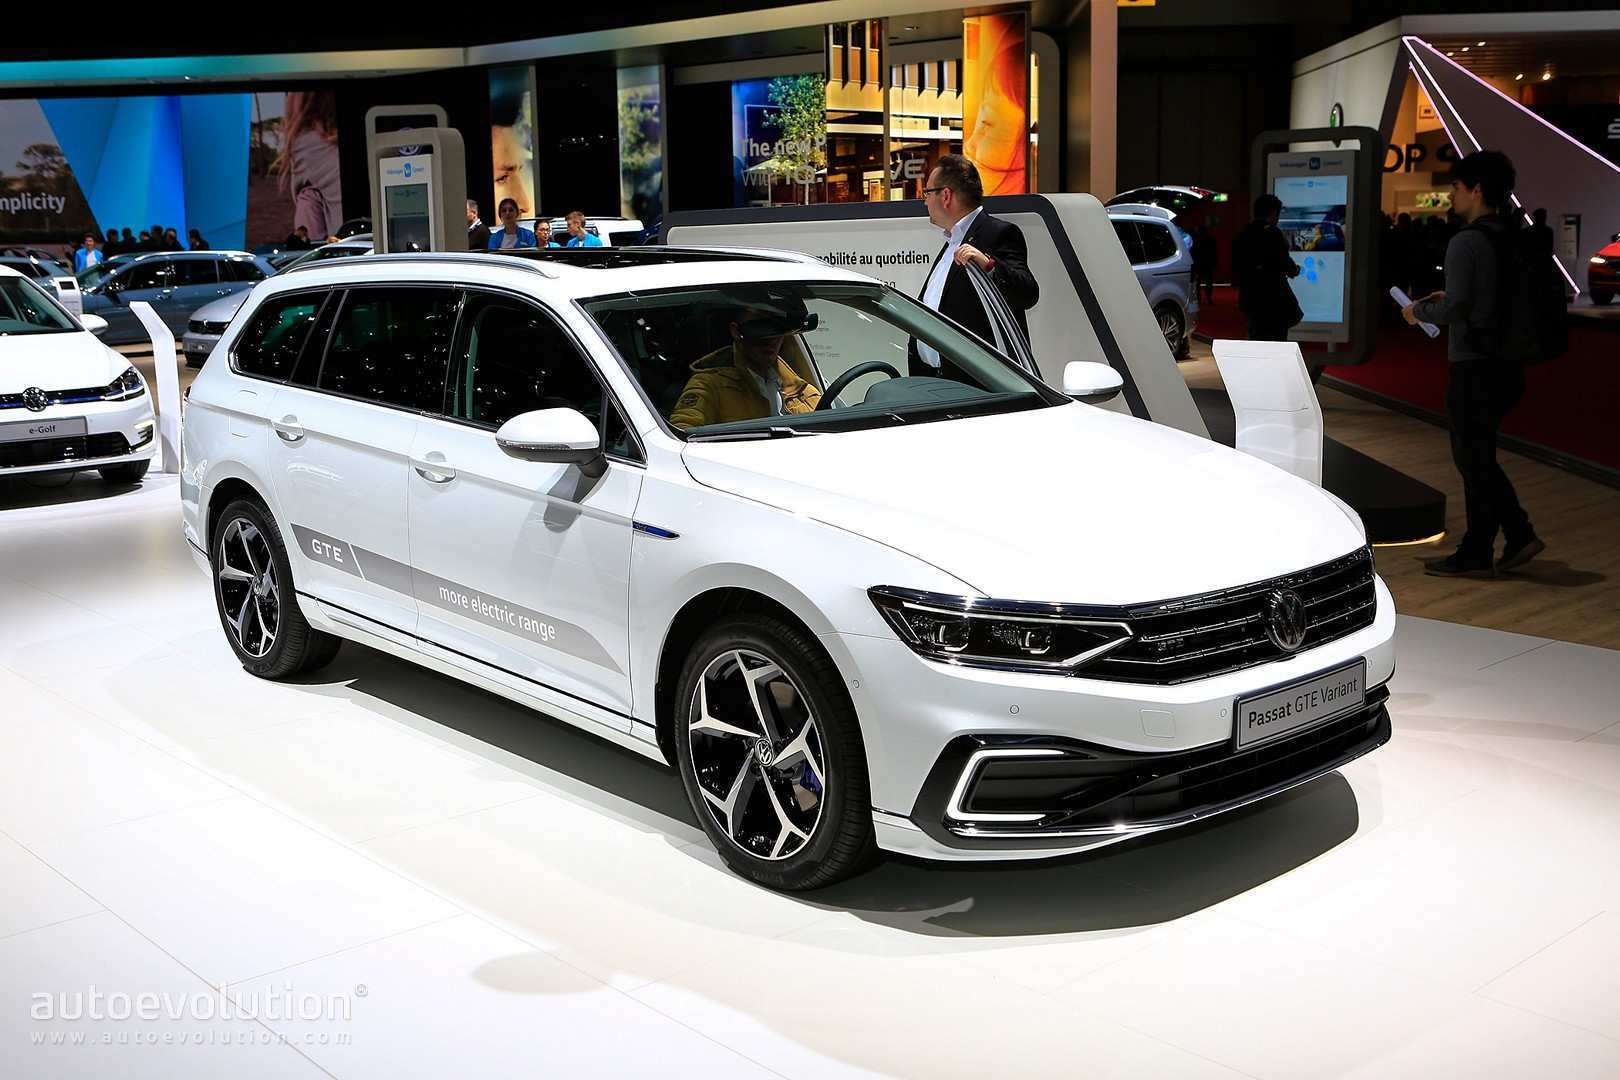 70 The Best 2020 Vw Passat Alltrack Exterior